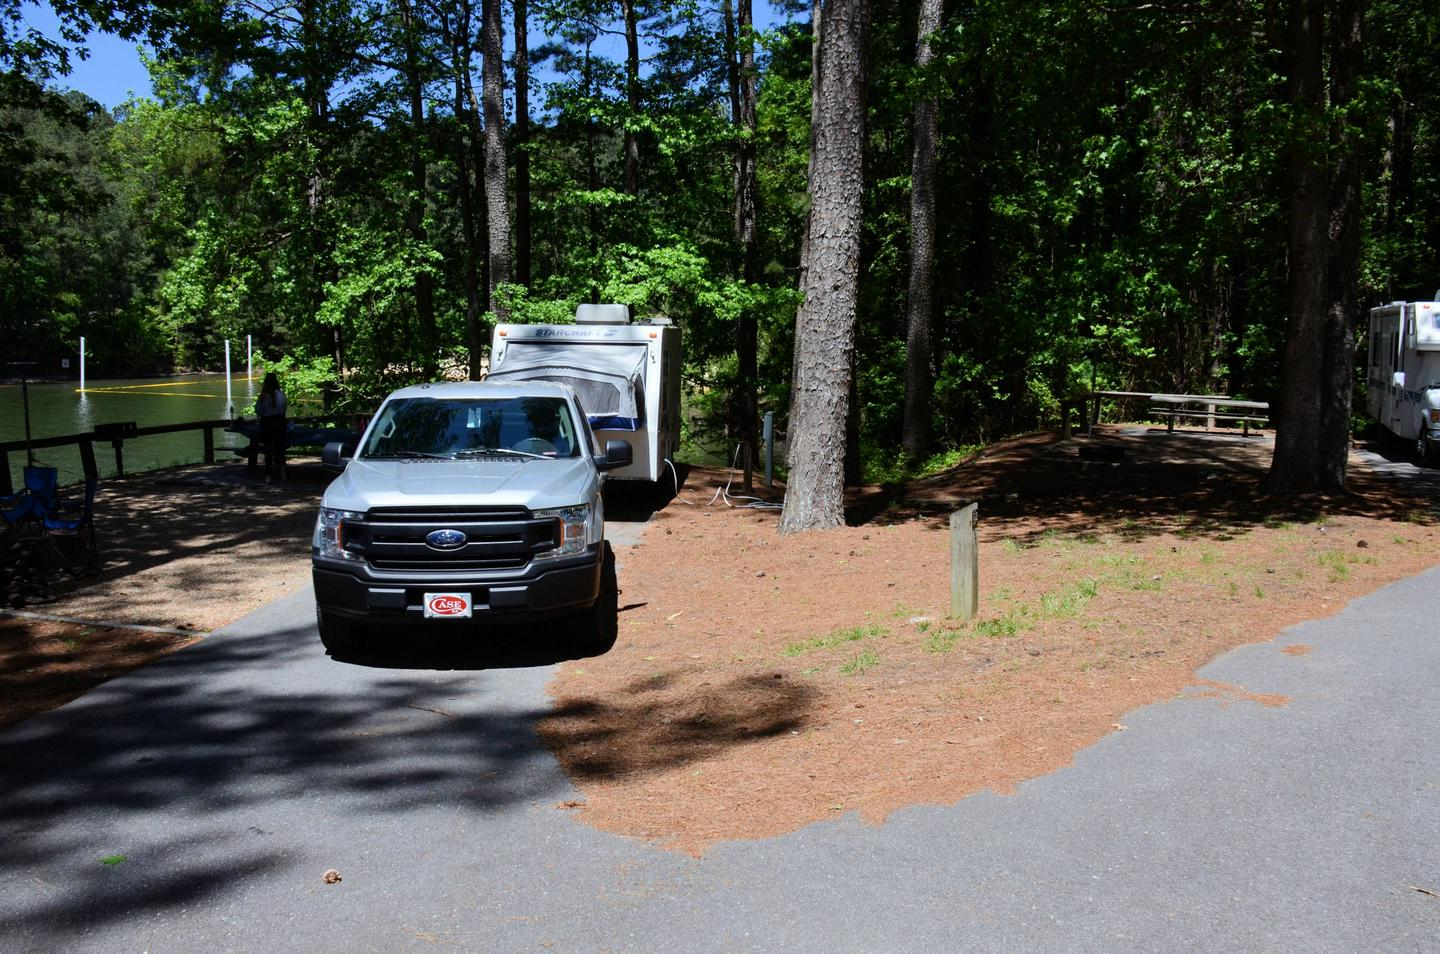 Driveway entrance/slope, utilities-side clearance.McKinney Campground, campsite 122.